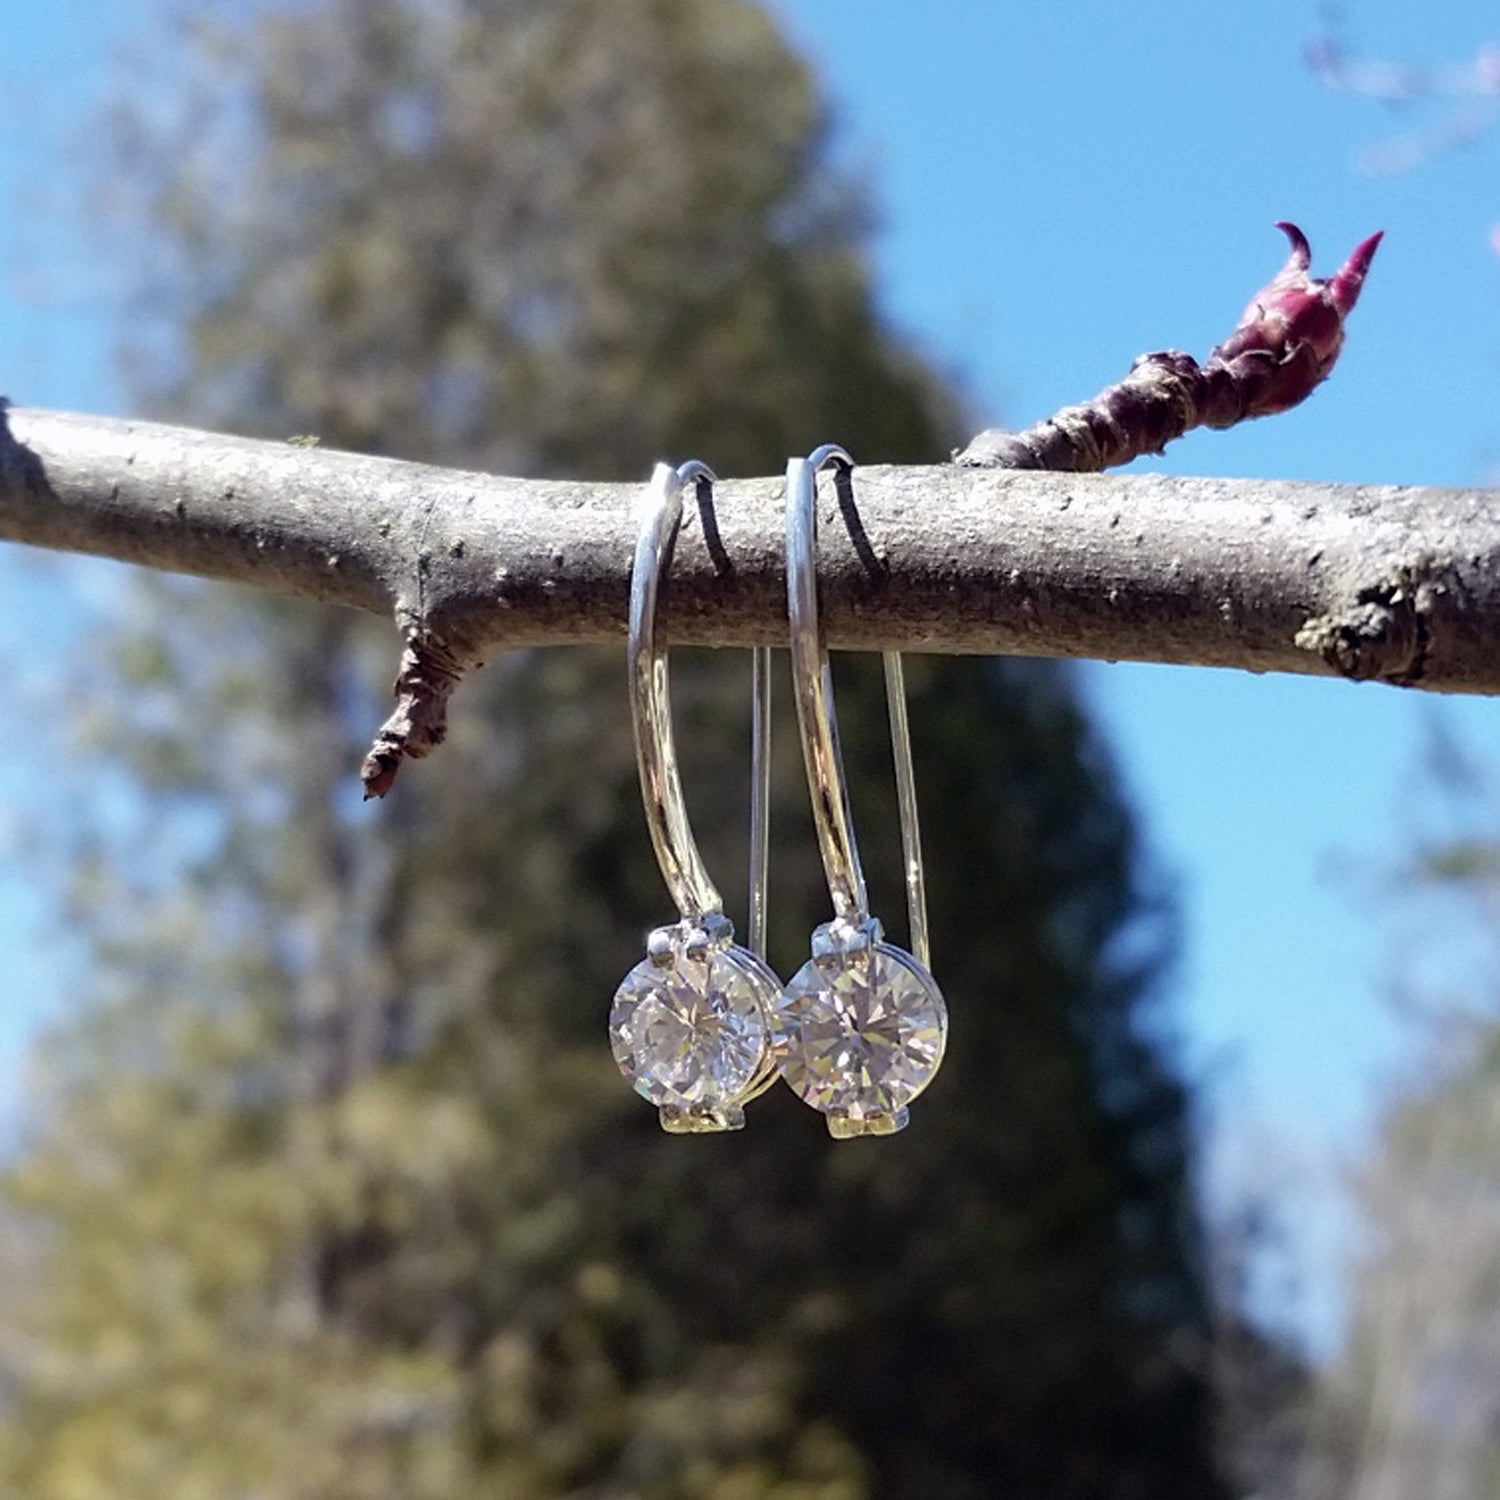 Glimmer of Hope Earrings